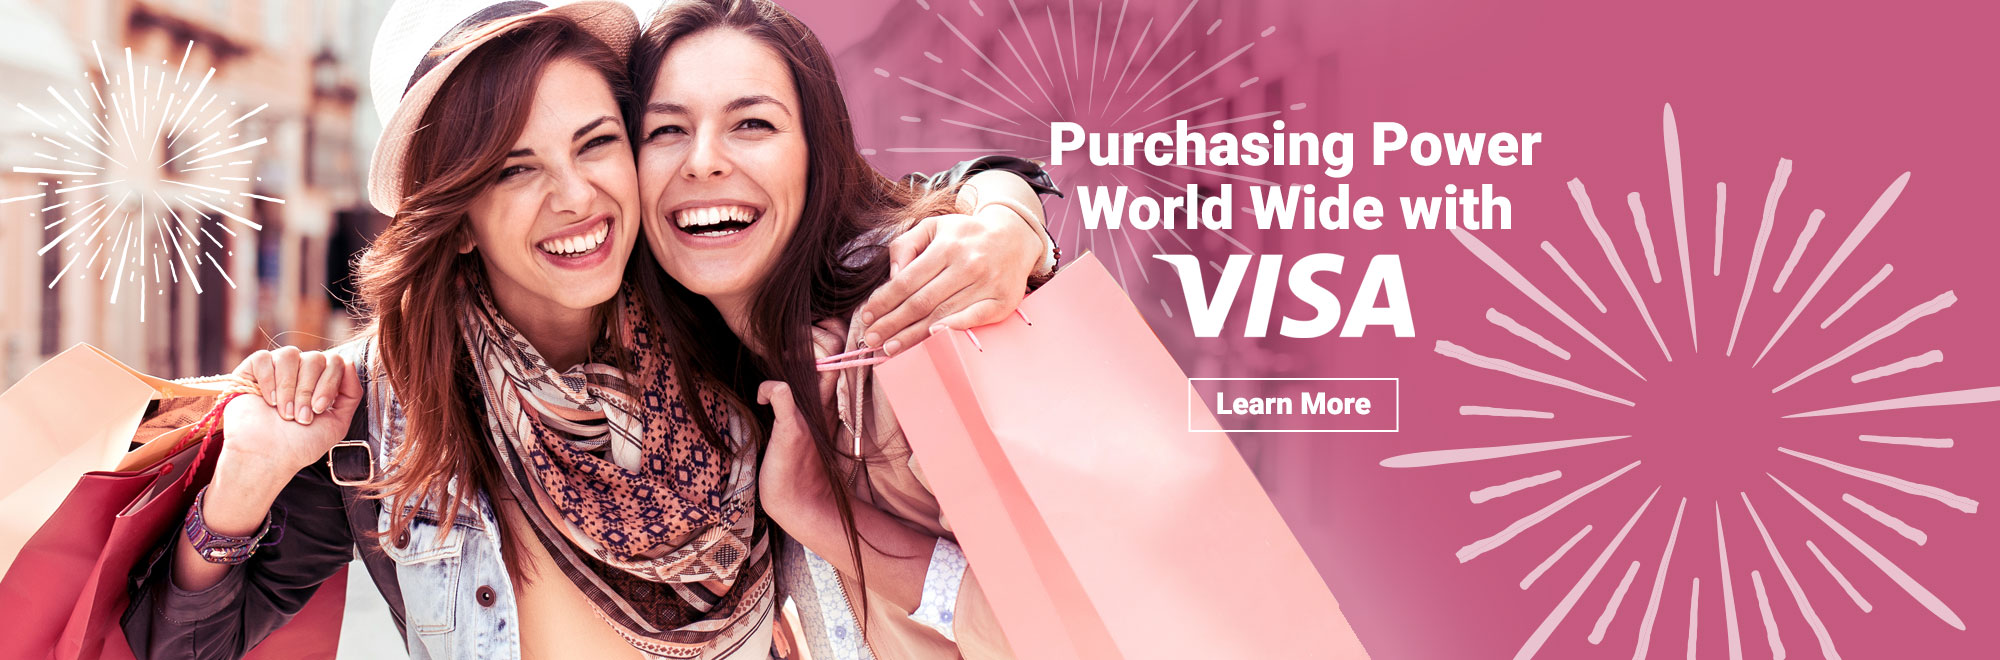 Purchasing Power World Wide with VISA